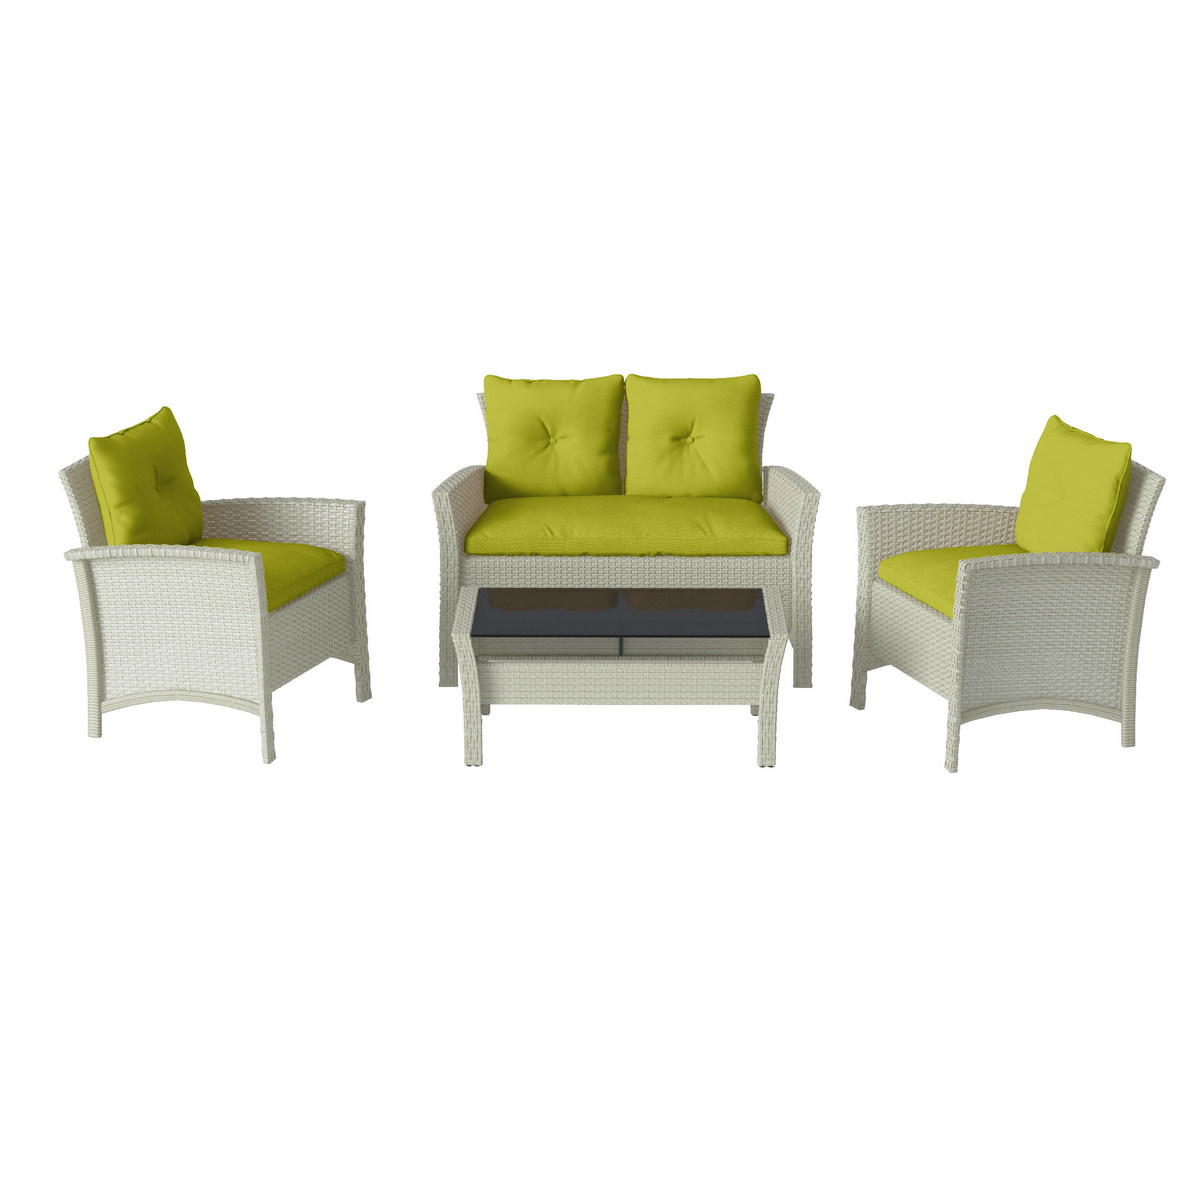 Corliving Furniture Patio Set Resin Rattan Wicker Lime Green Photo